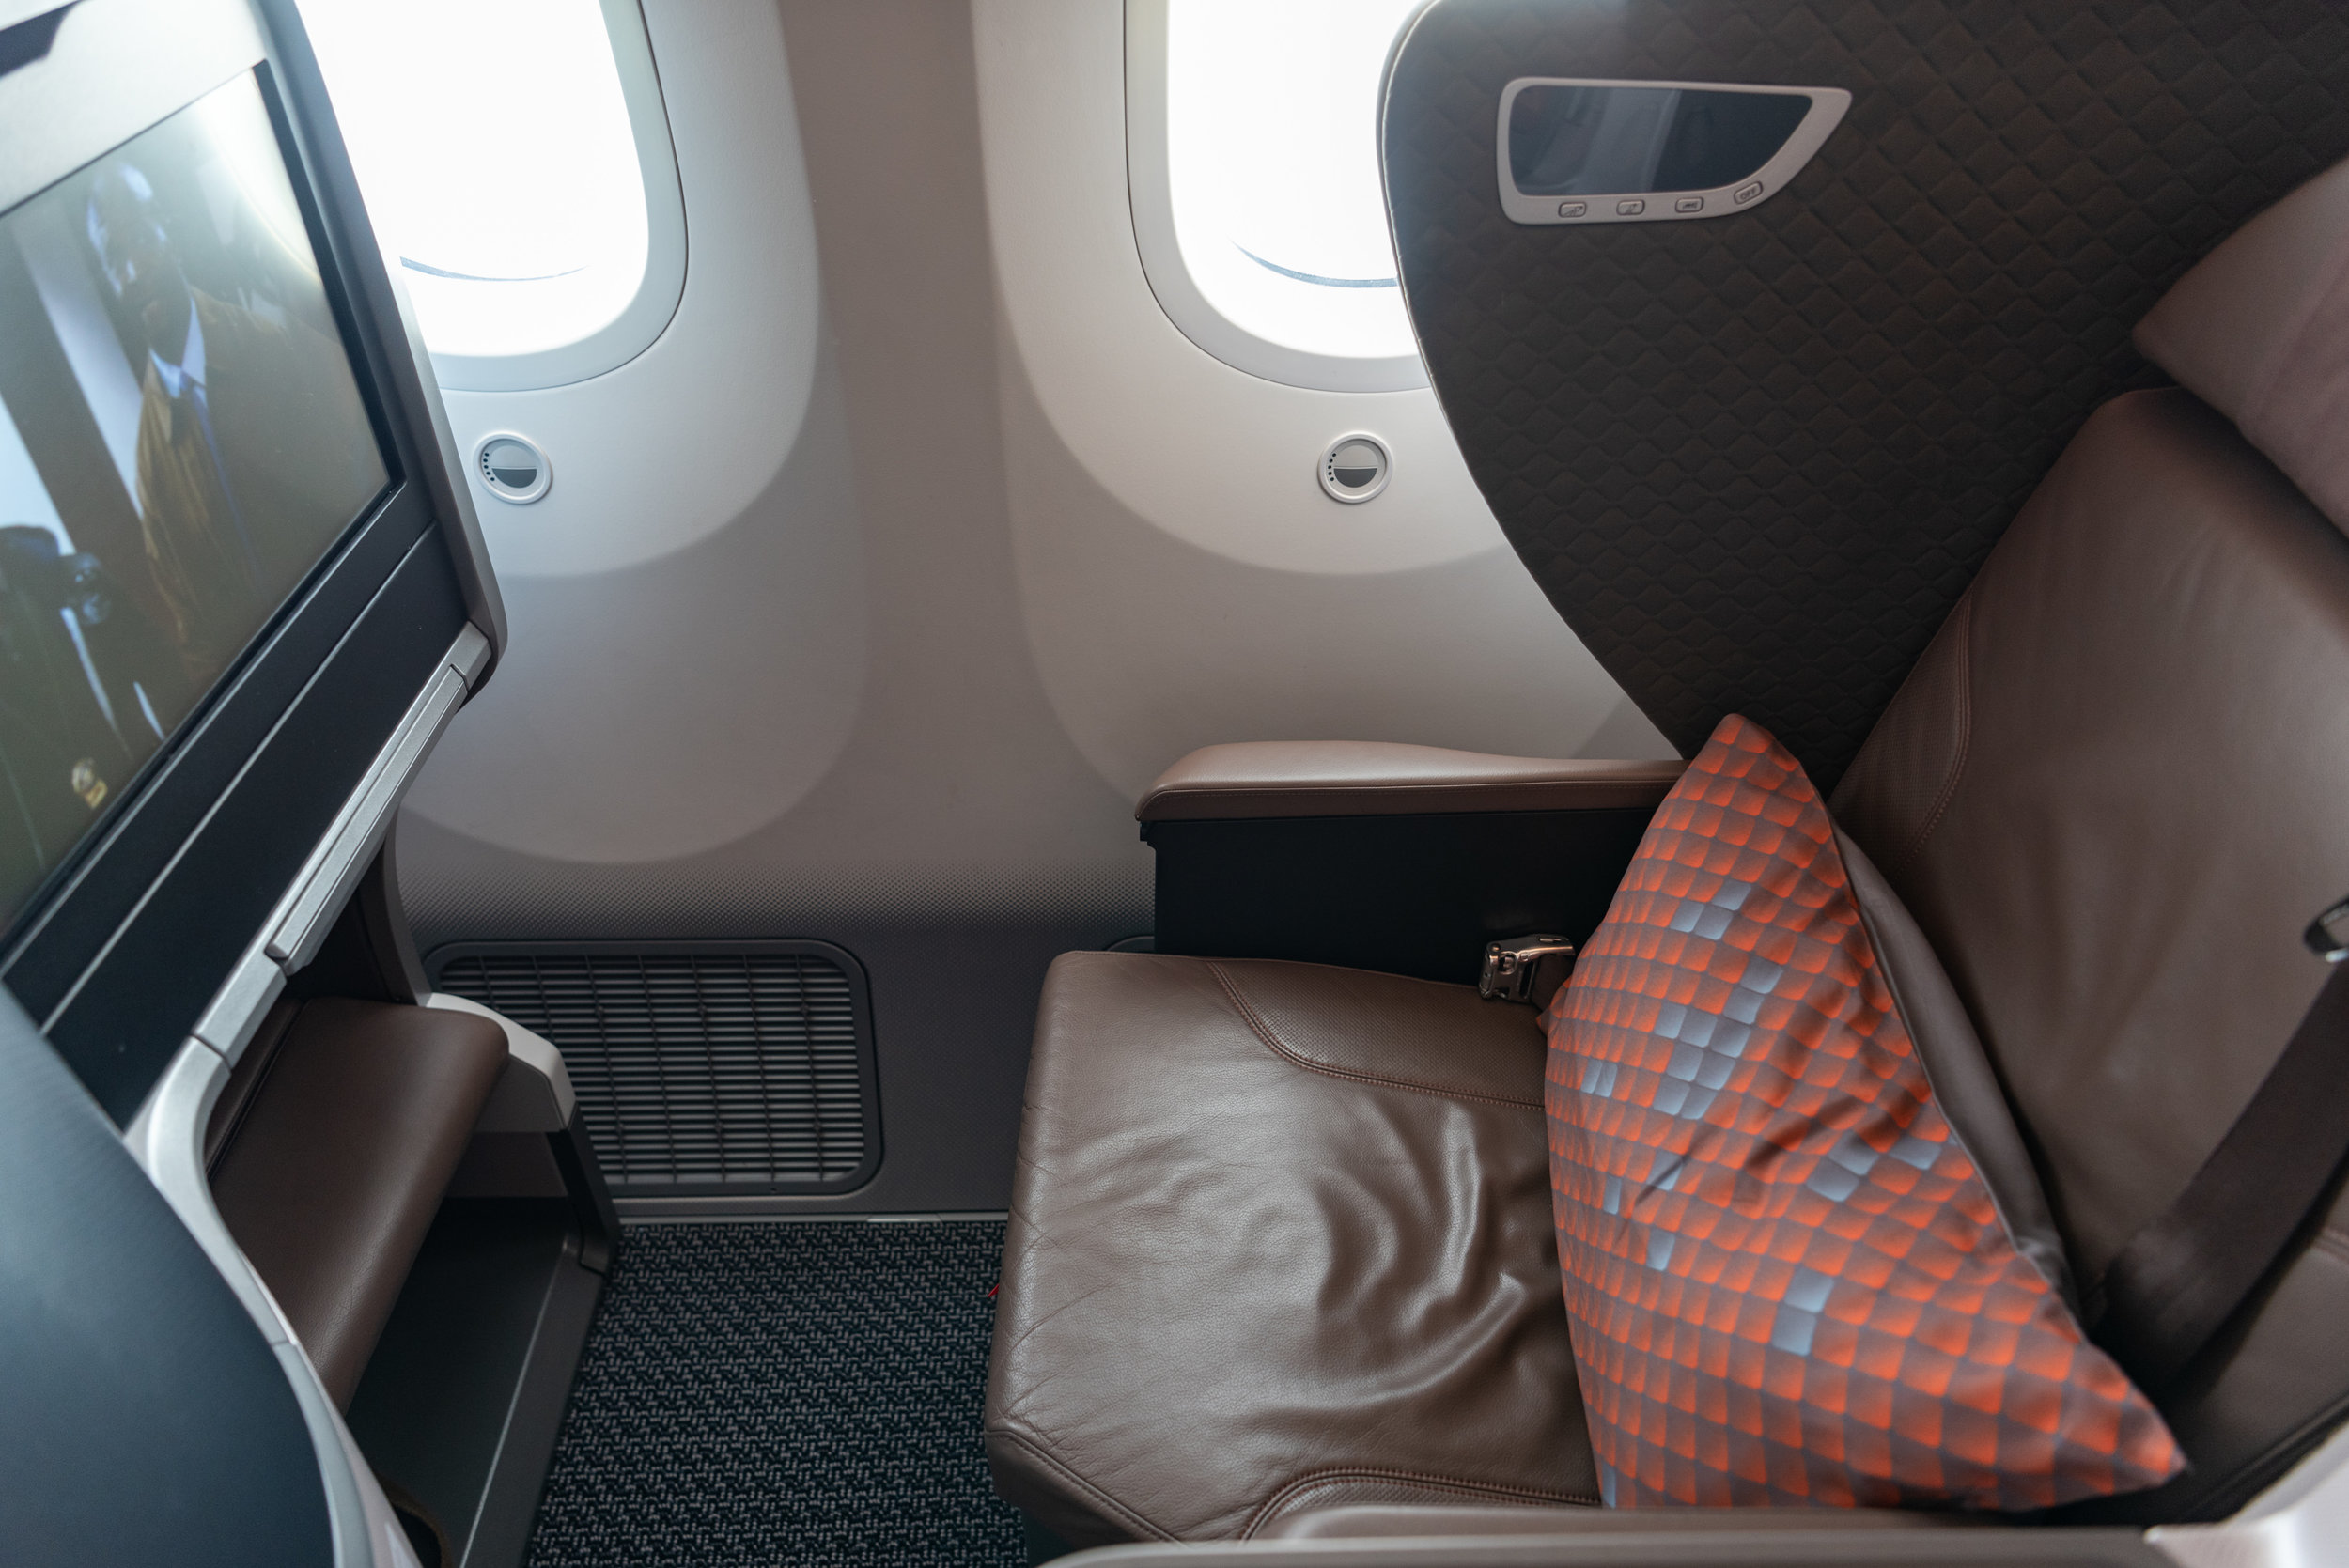 Trip Report: Singapore Airlines Business Class SQ942 787-10 ...